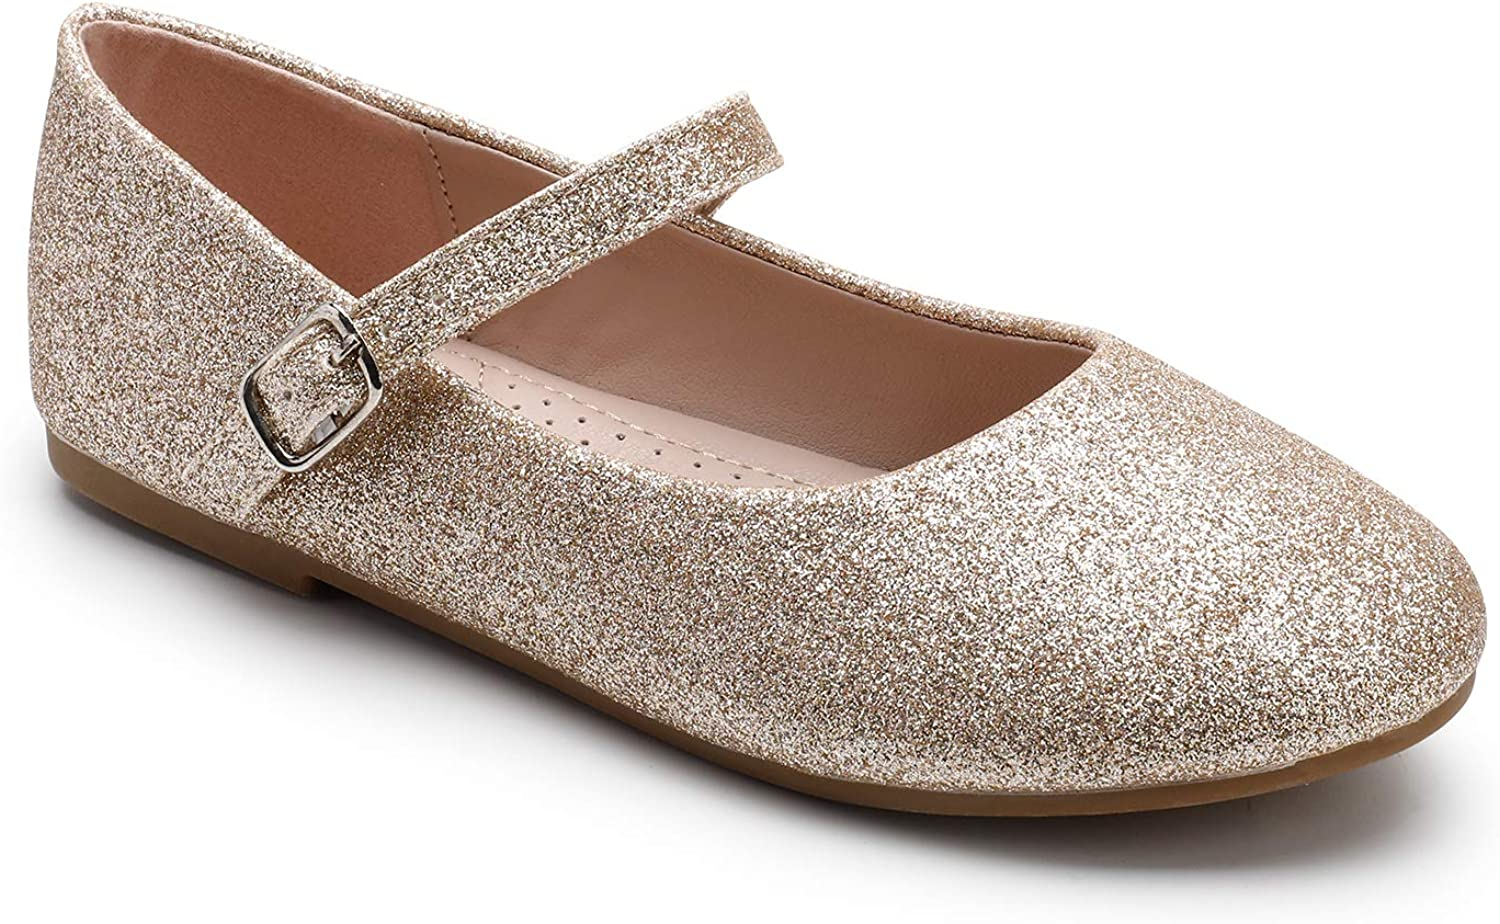 Trary Girls Flats Mary Jane Slip-on Shoes Toddler/Little Girls/Big Girls  Clothing, Shoes & Jewelry Girls